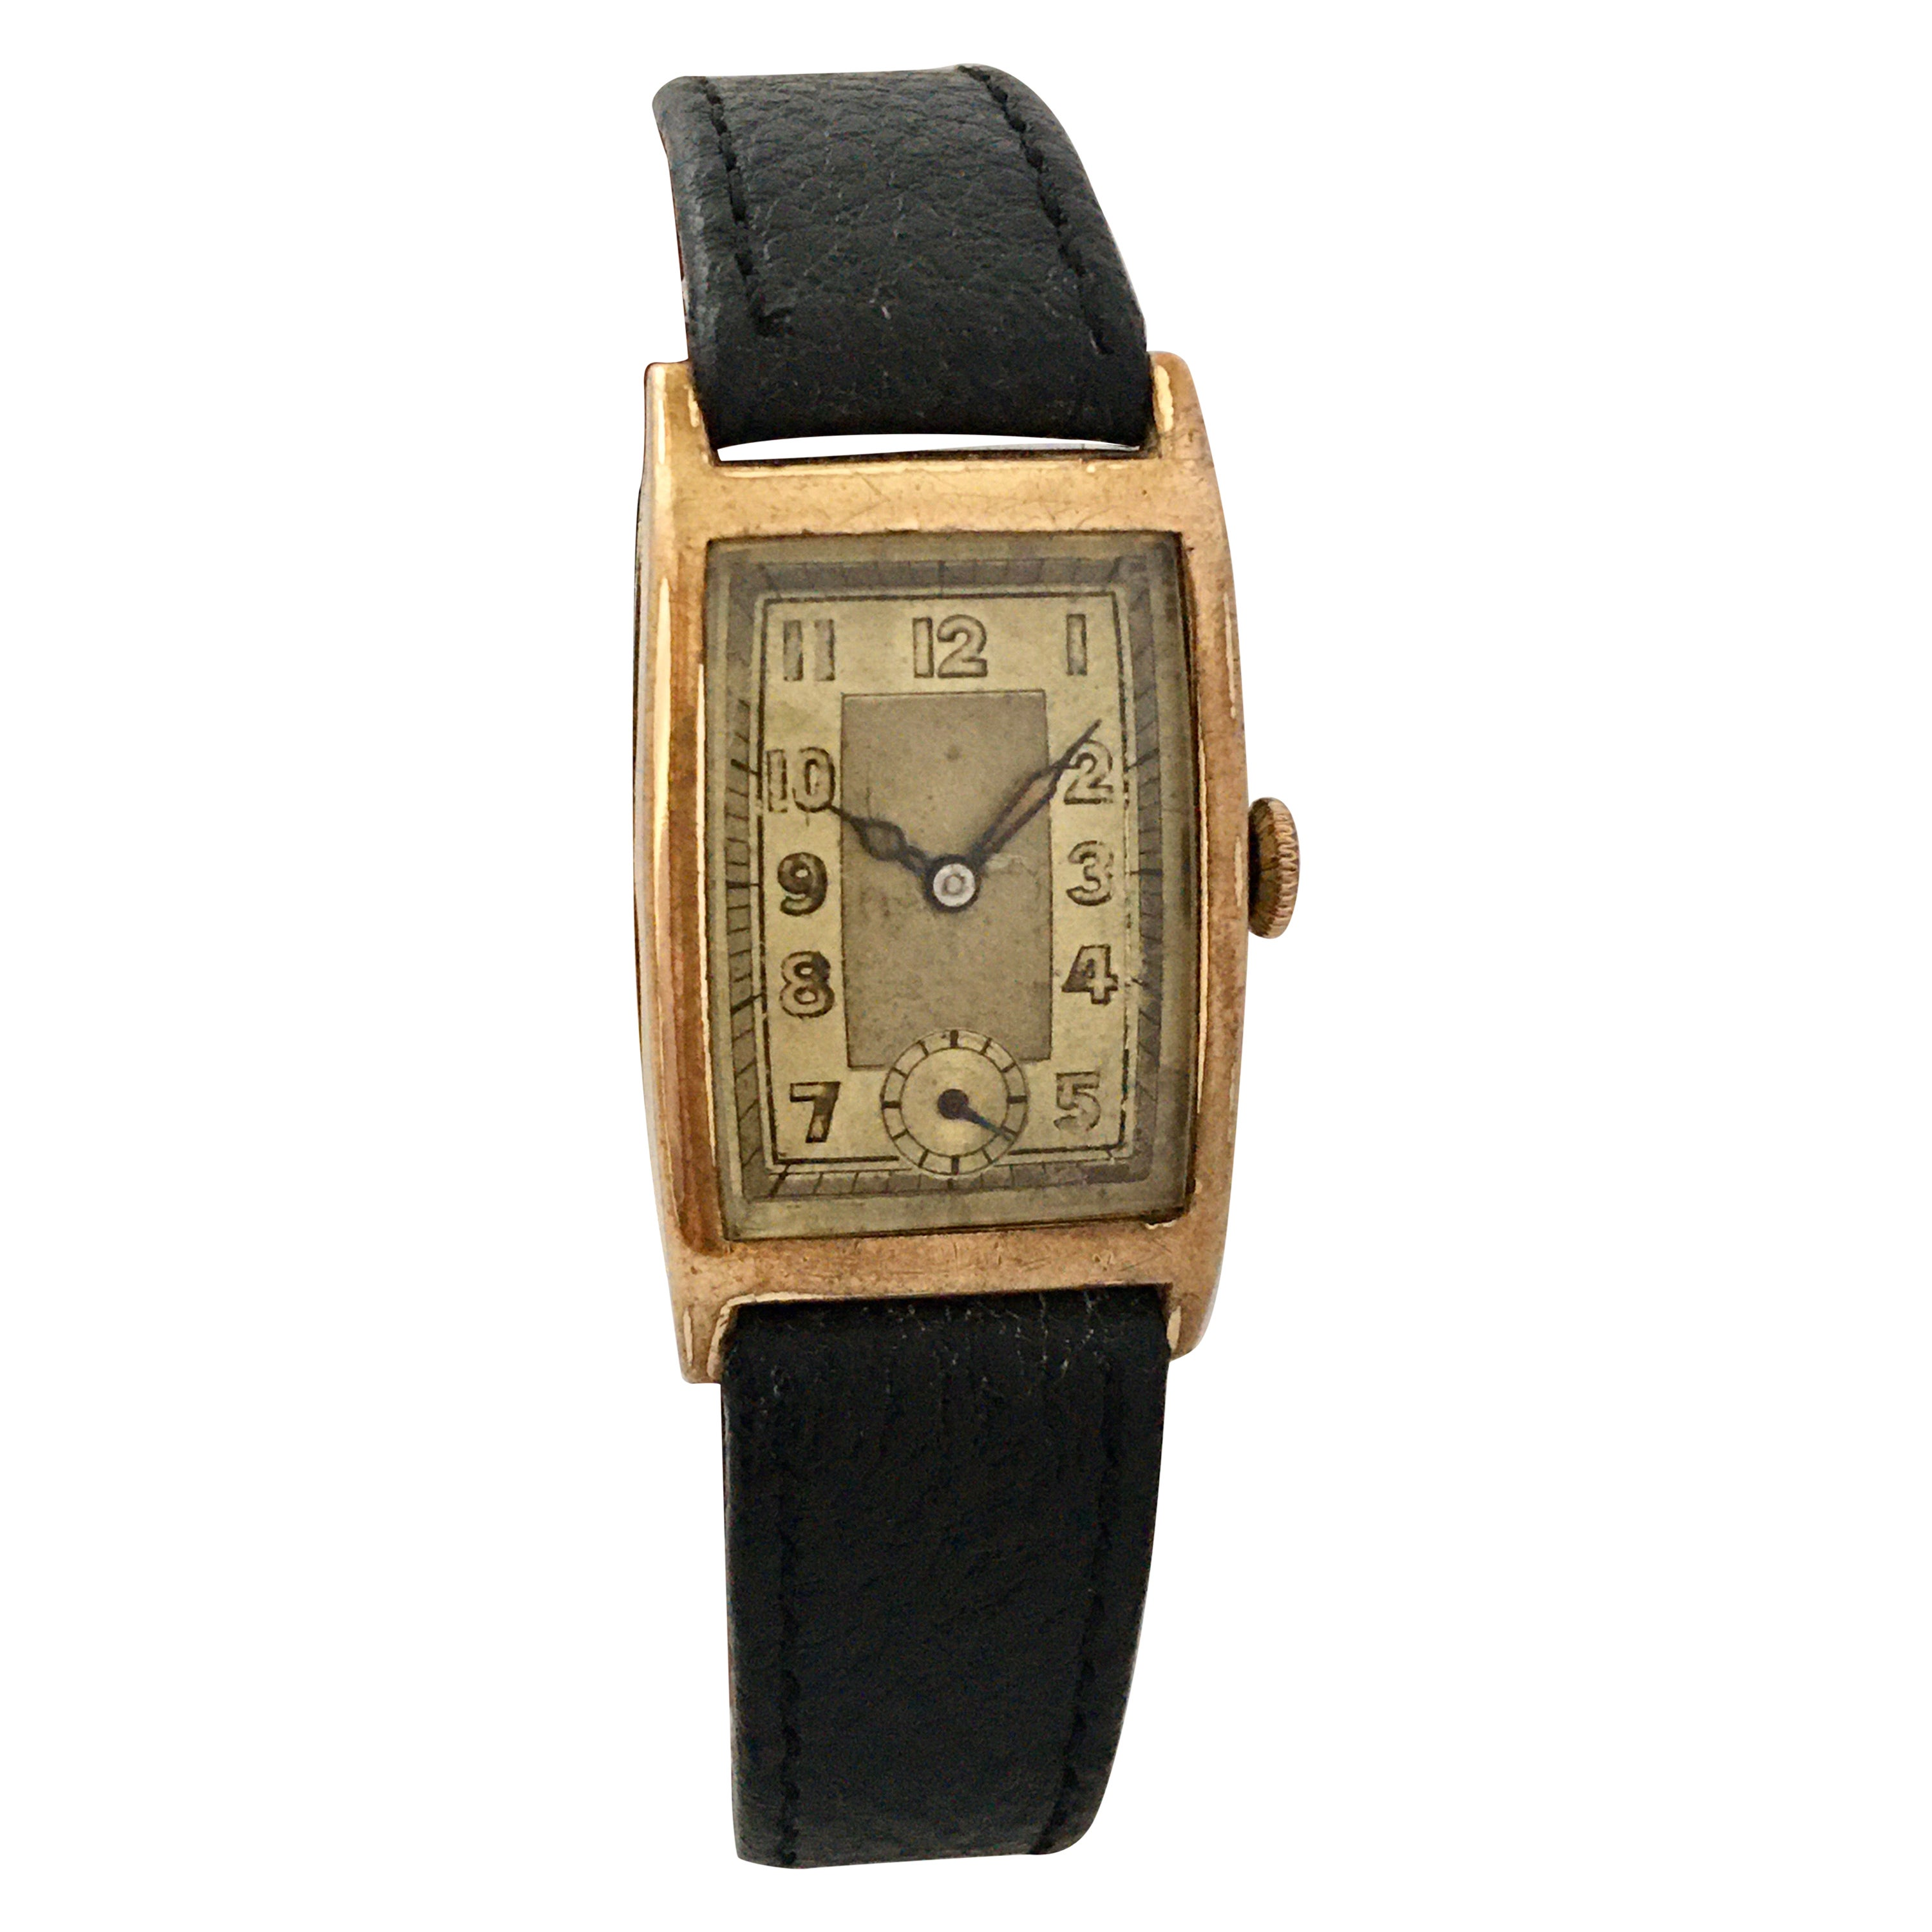 1930s Gold-Plated Manual Winding Vintage Watch